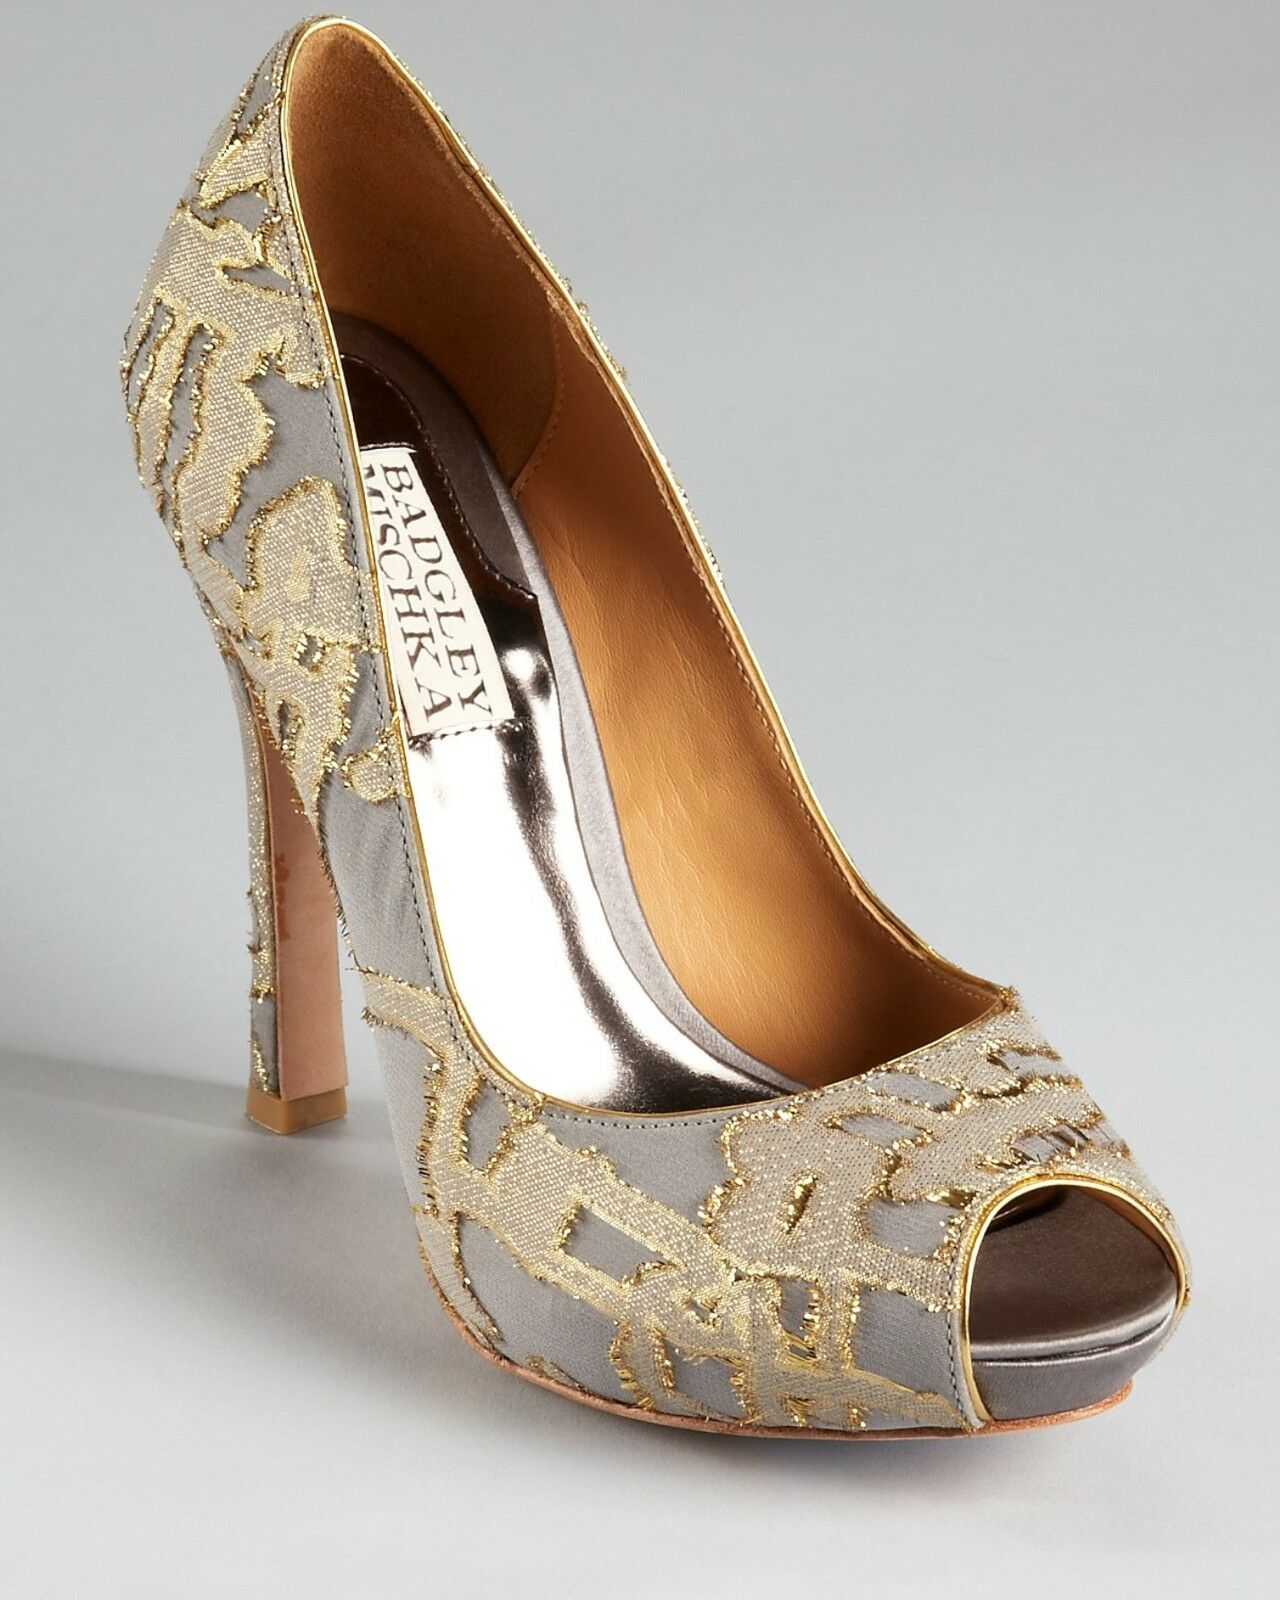 Badgley Mischka ROXIE evening open pump tapestry shoes Grey/gold shoes 6,5 NIB